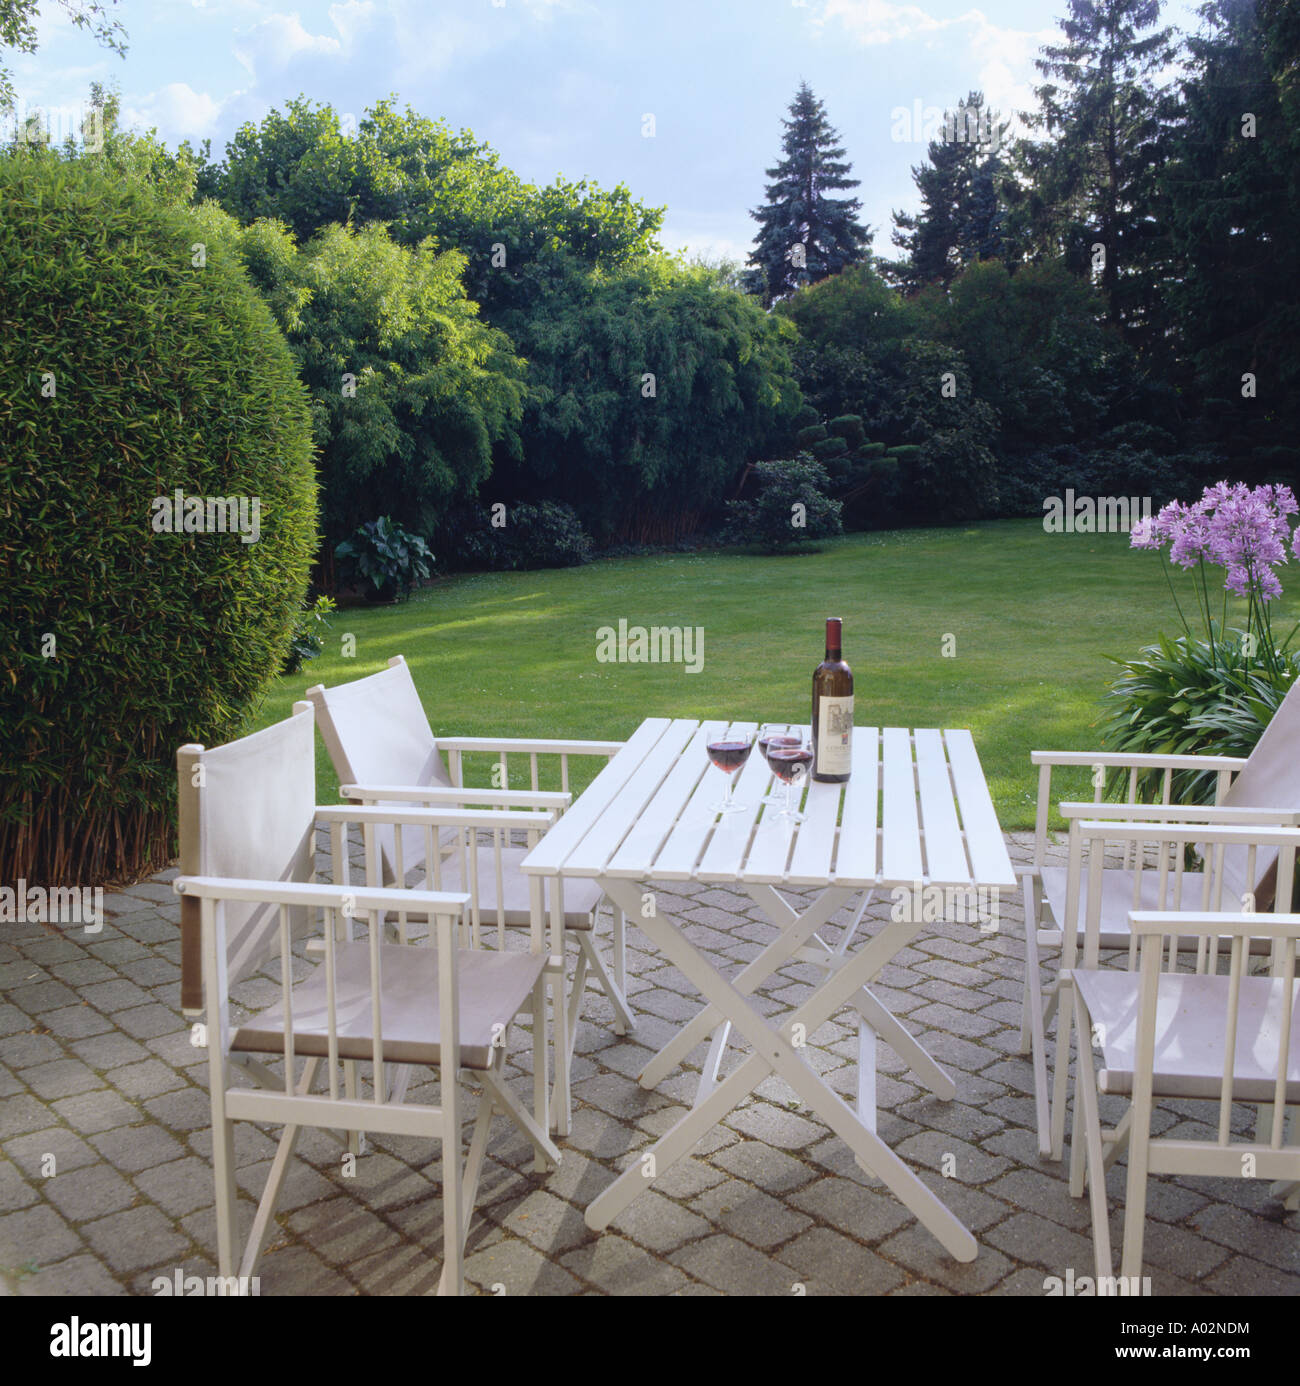 White garden furniture on paved patio overlooking lawn in large country  garden - White Garden Furniture On Paved Patio Overlooking Lawn In Large